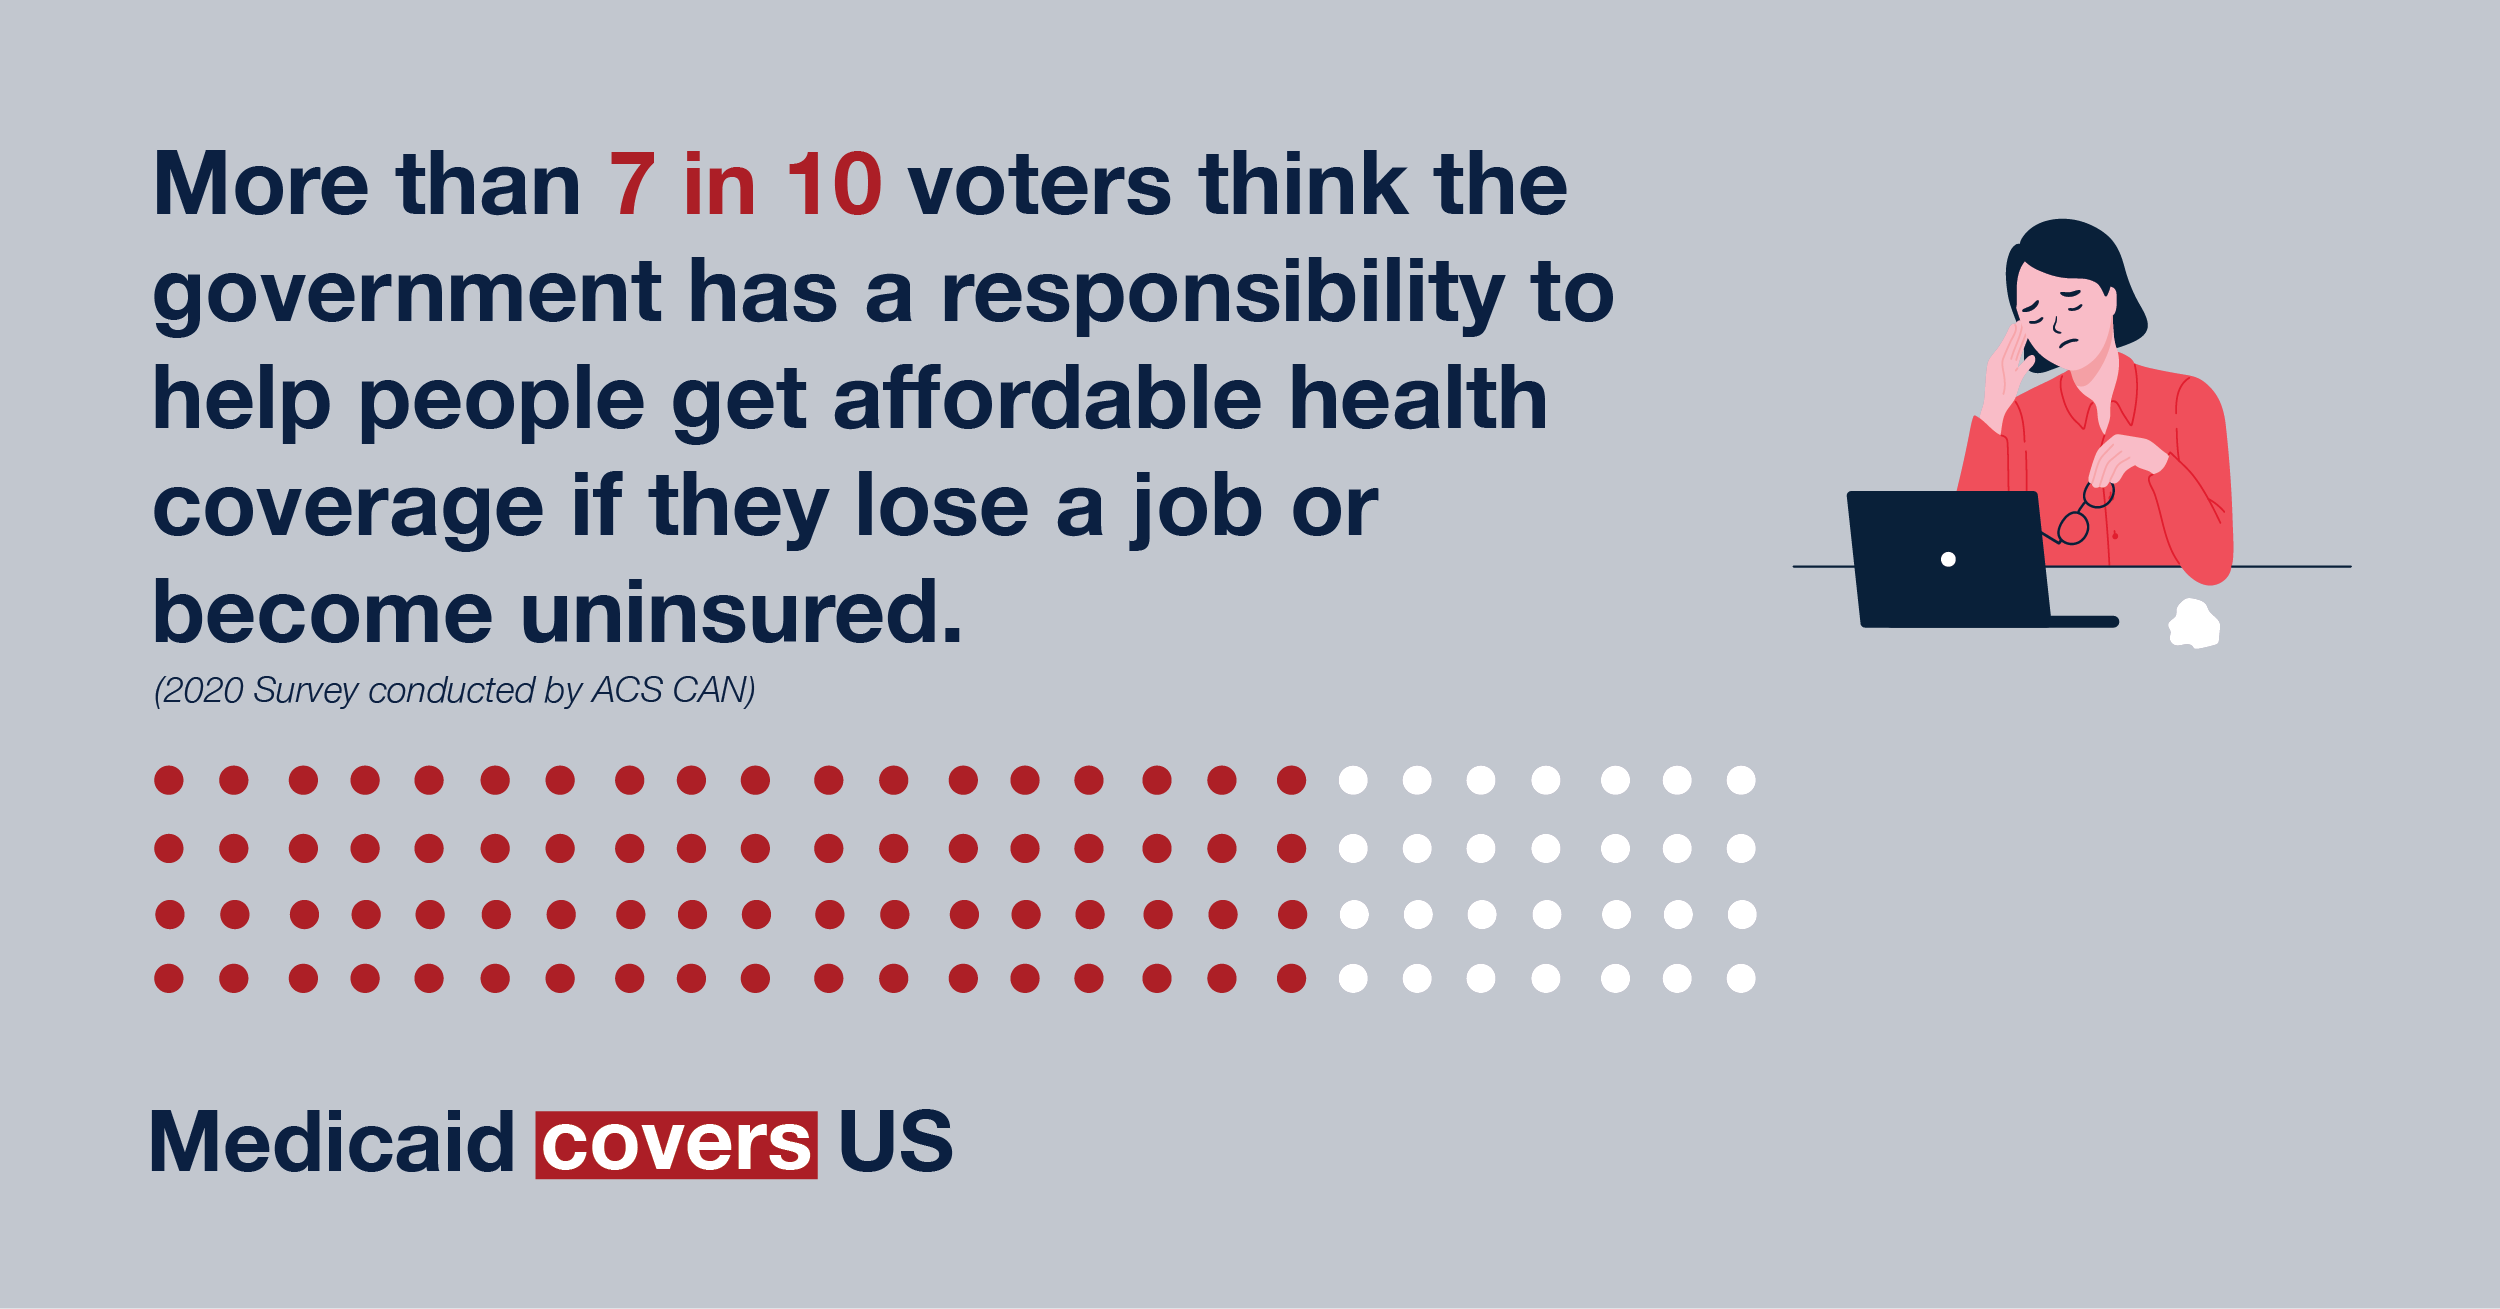 More than 7 in 10 voters think the government has a responsibility to help people get affordable health coverage if they lose a job or become uninsured.